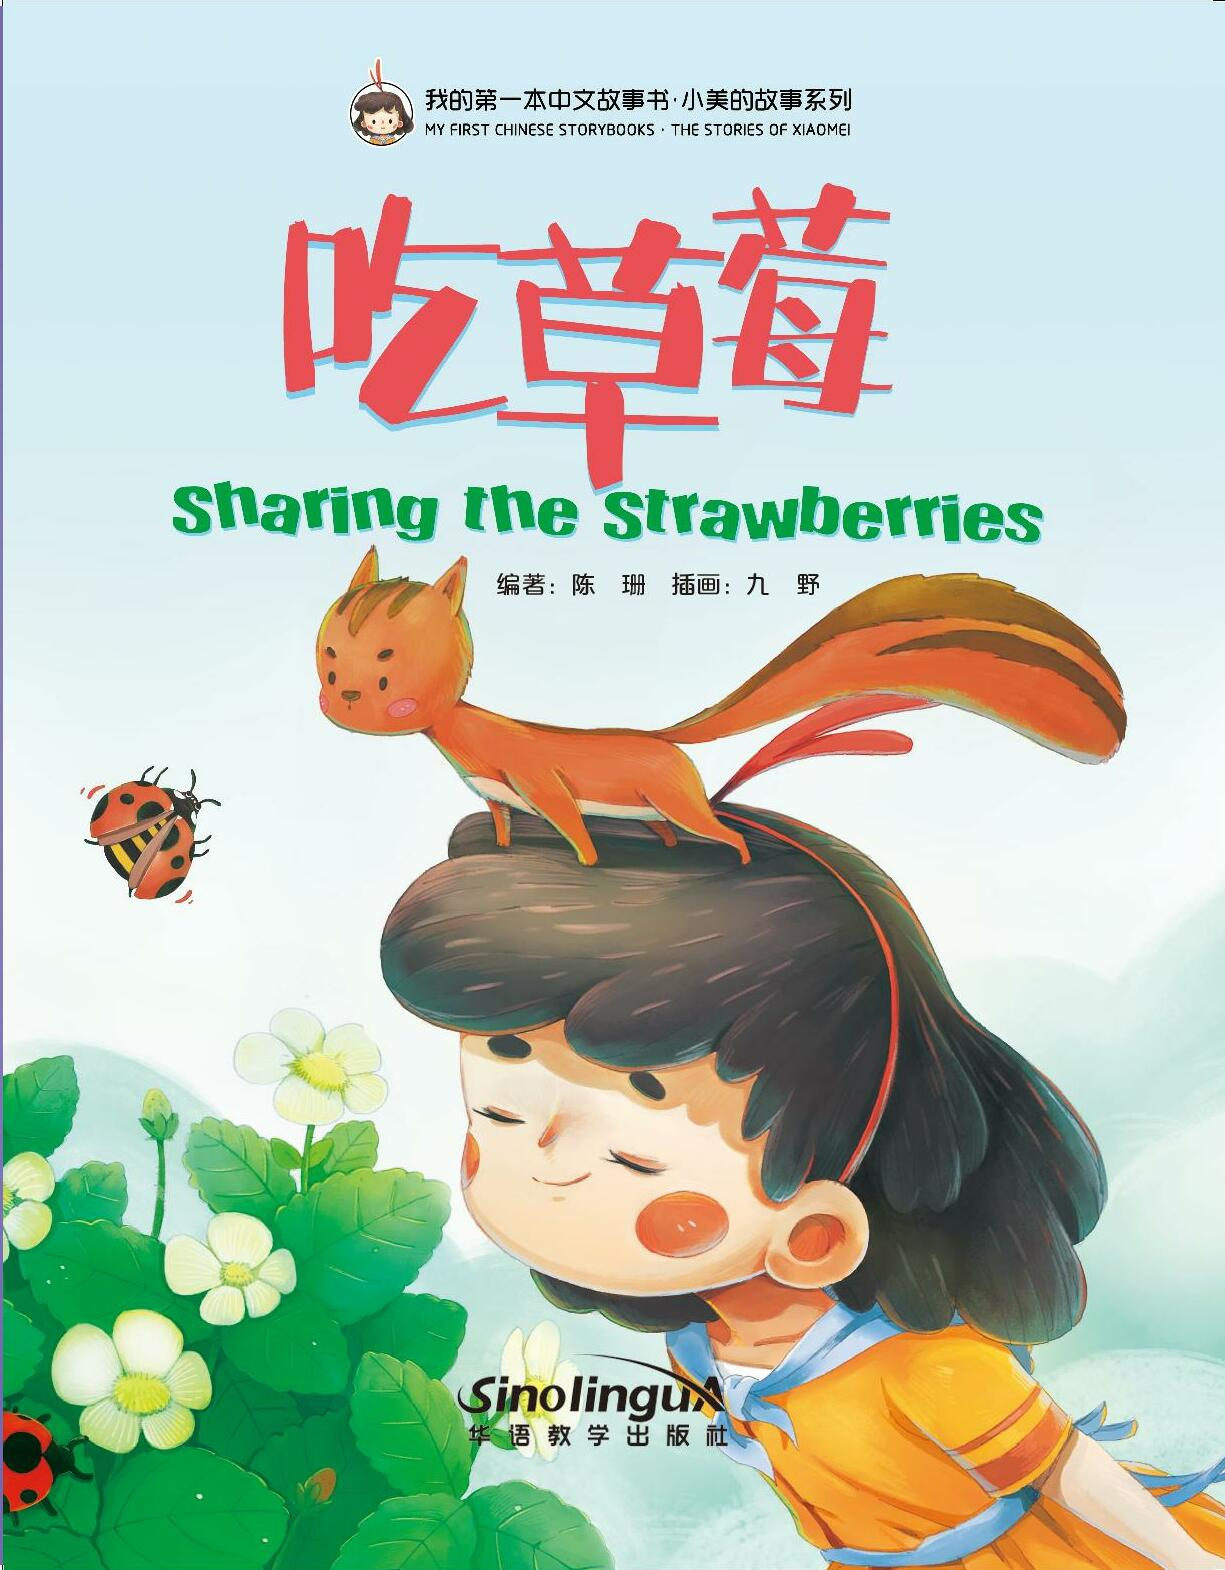 My First Chinese Storybooks-The Stories of Xiaomei<Sharing the Strawberries>